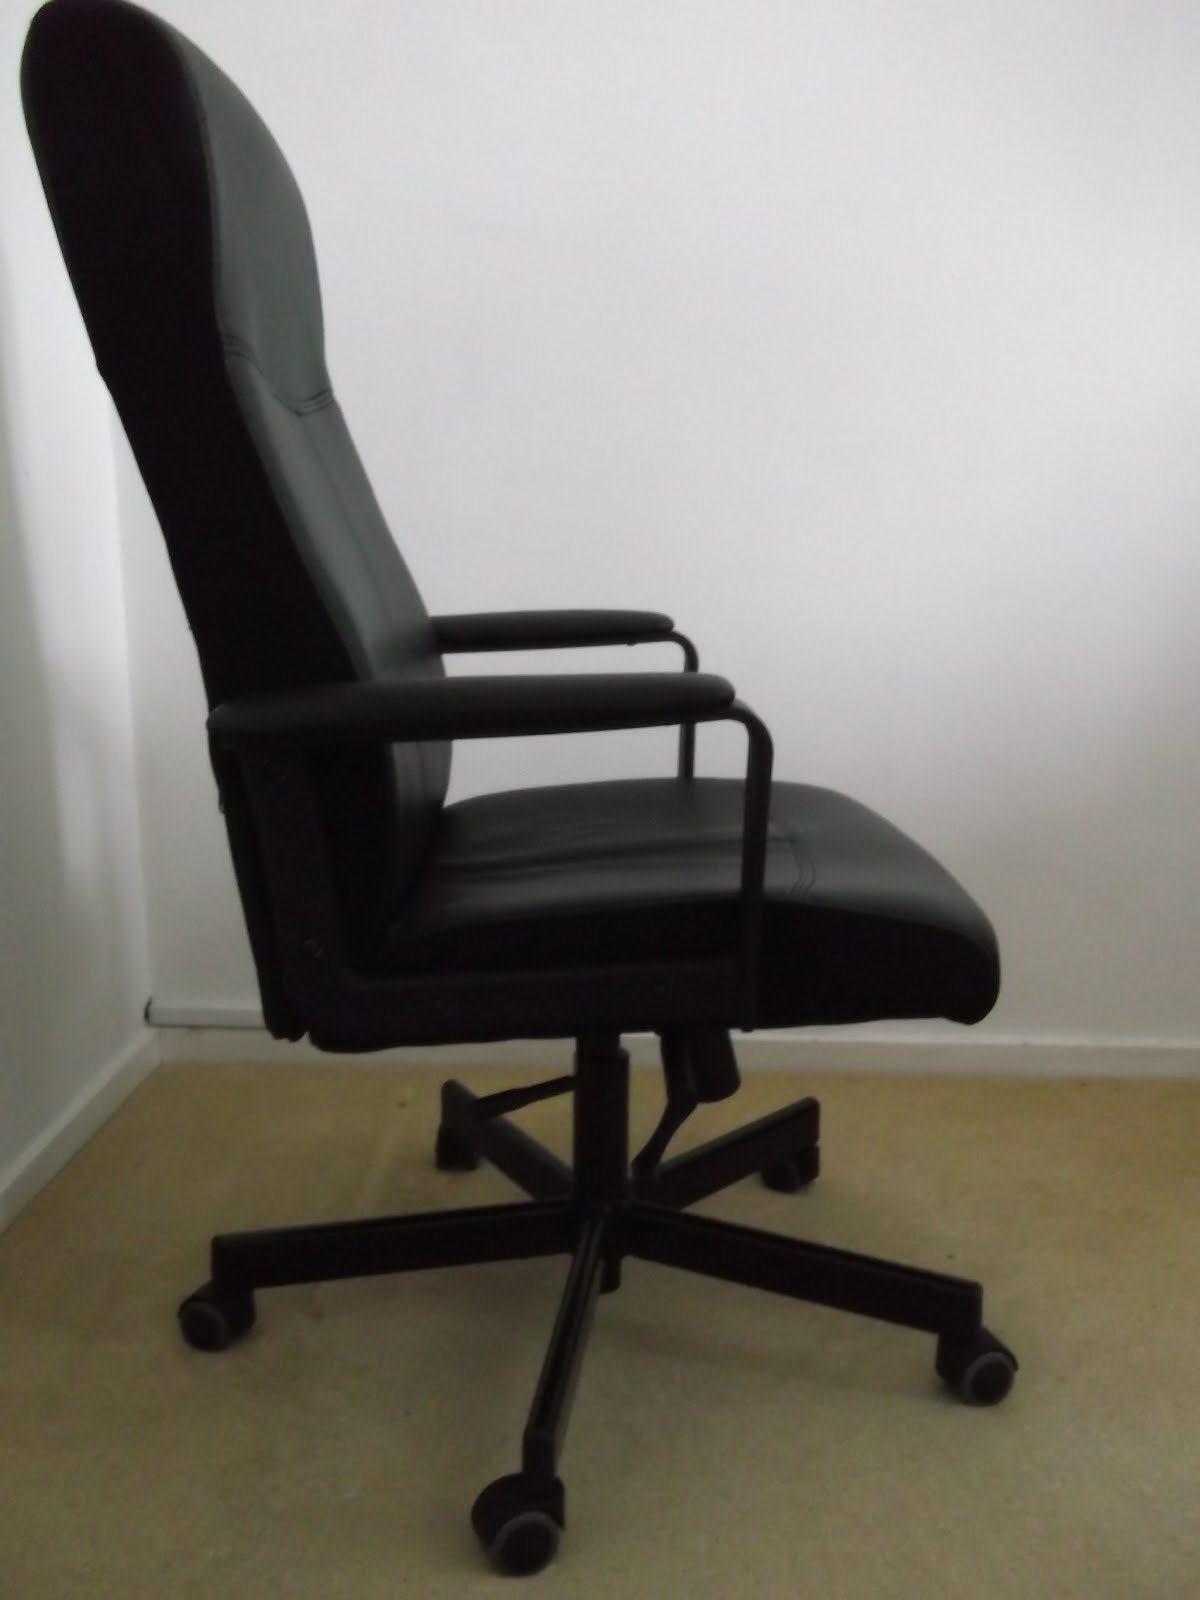 Consumer Review: IKEA office chair review : IKEA Malkolm chair